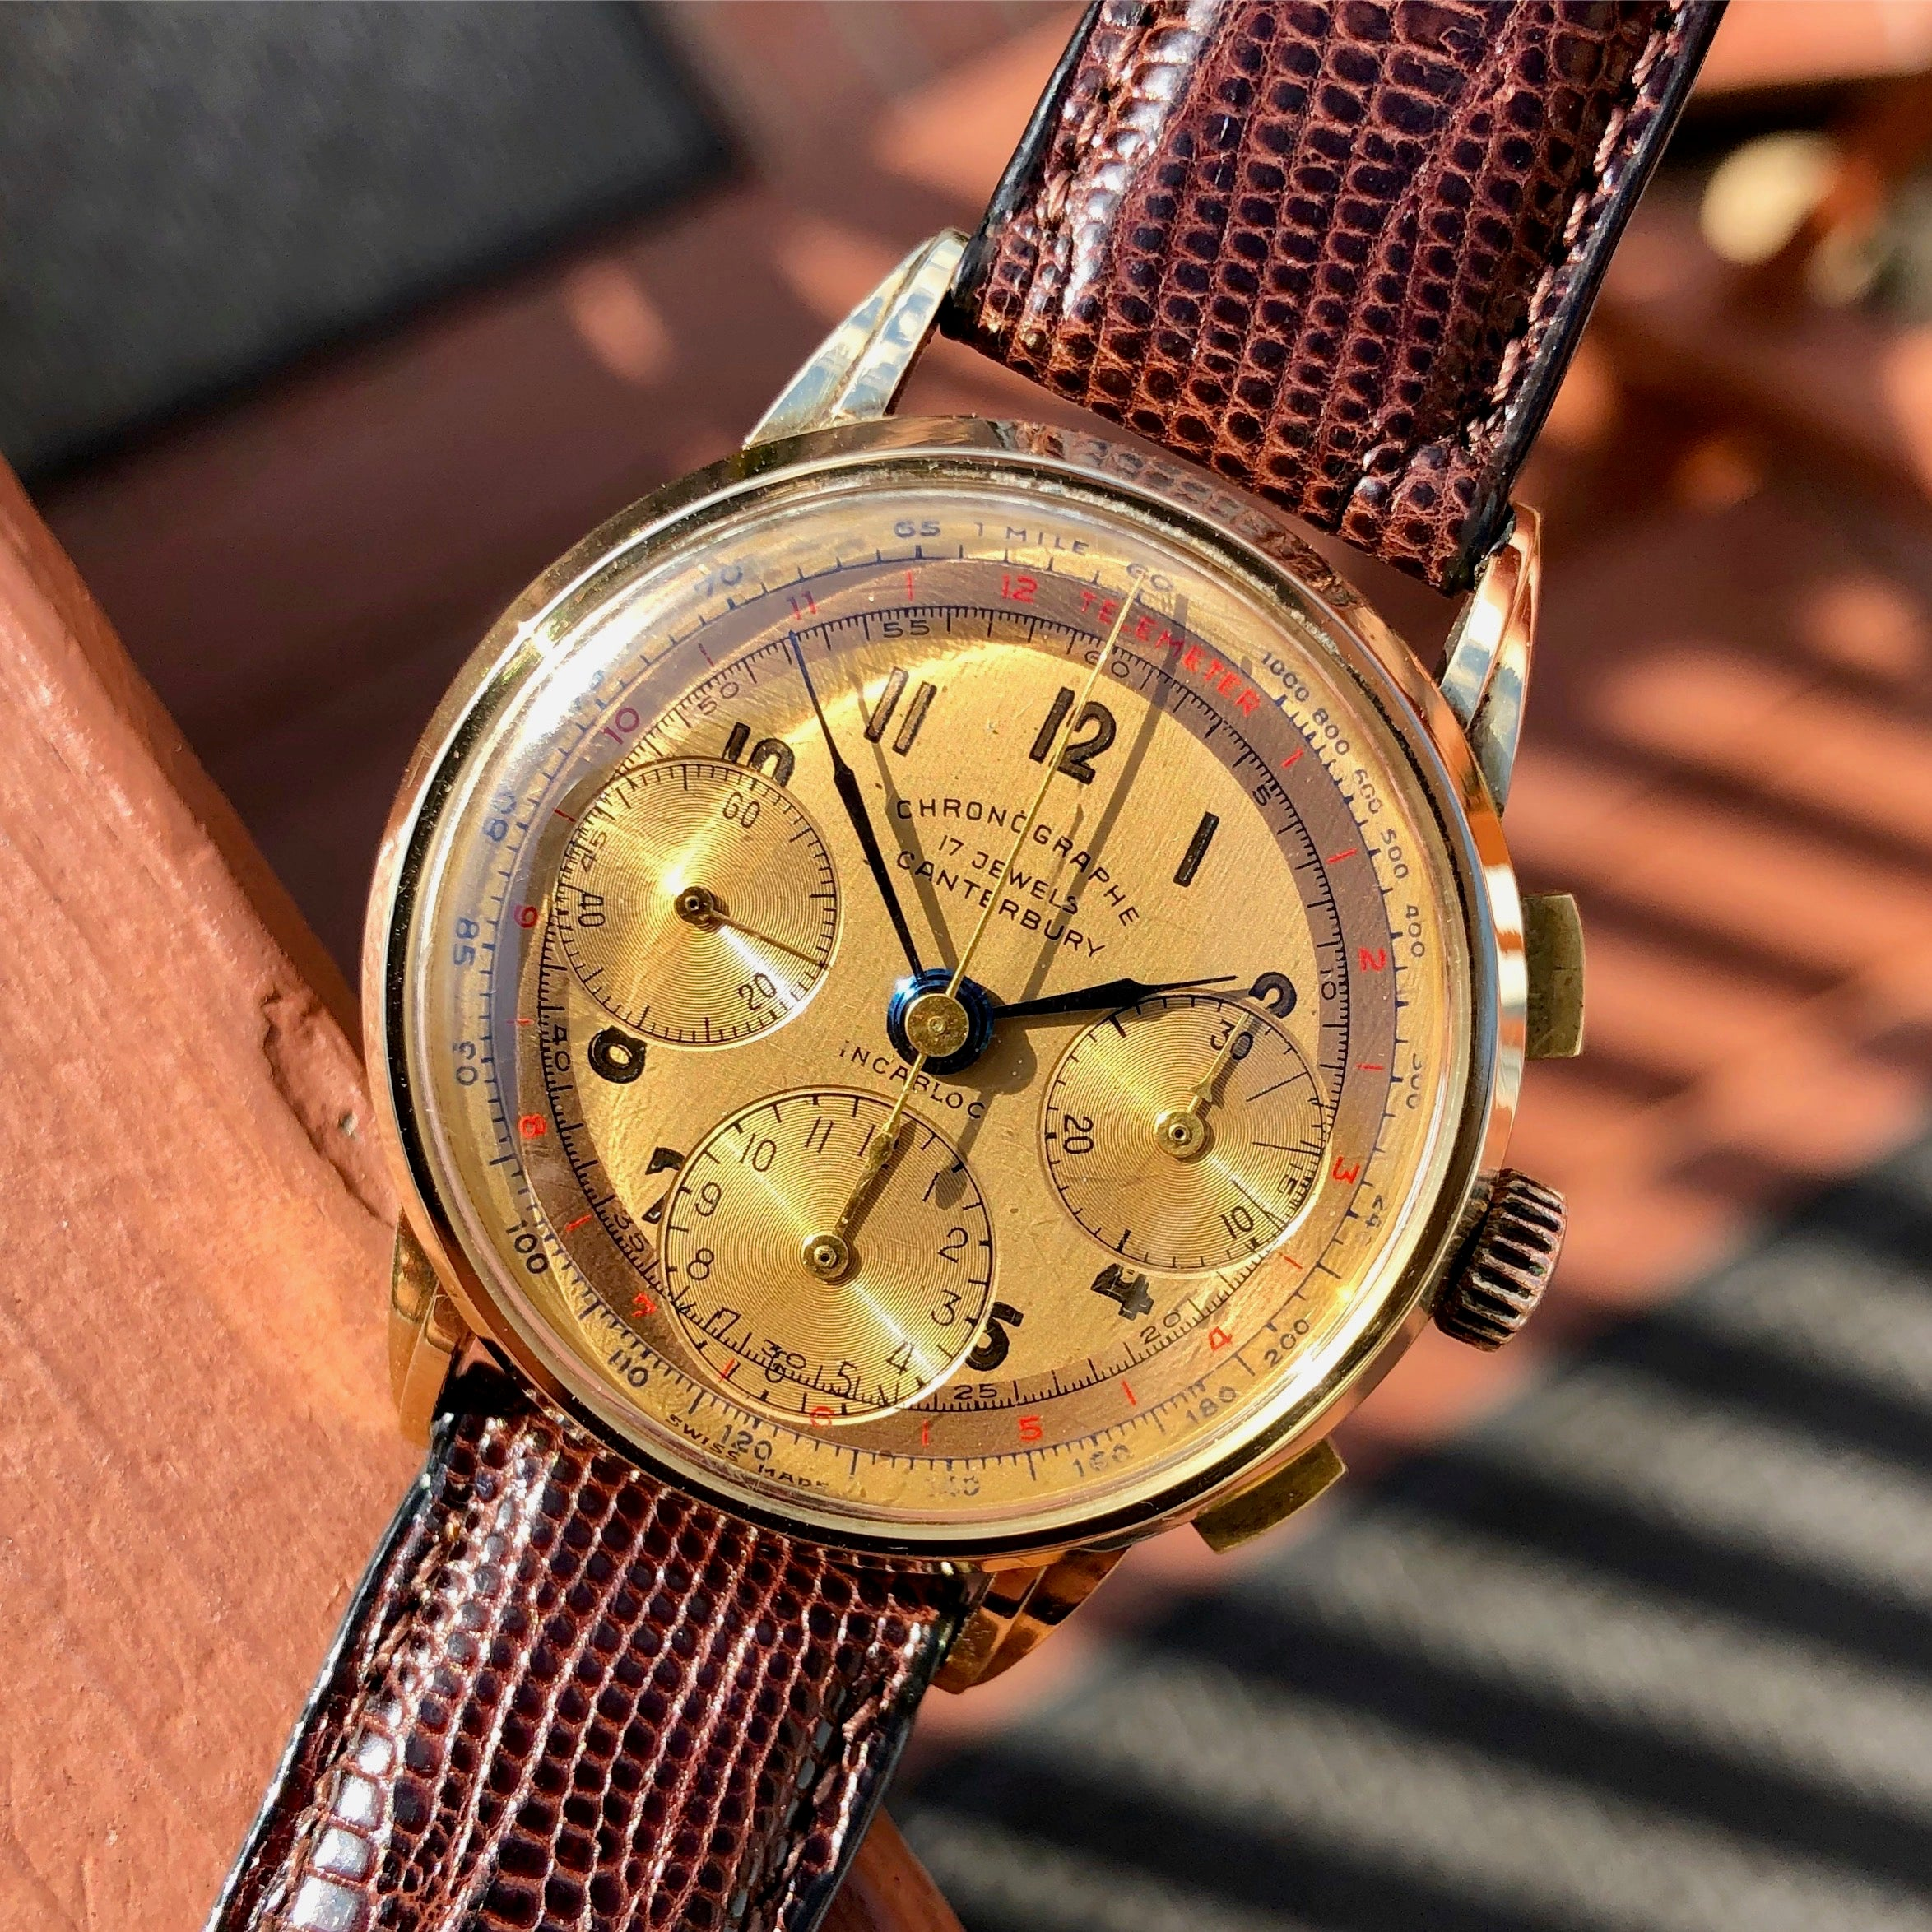 Vintage Canterbury 14K Yellow Gold Tri-Color Valjoux 72 Chronograph Wristwatch - Hashtag Watch Company